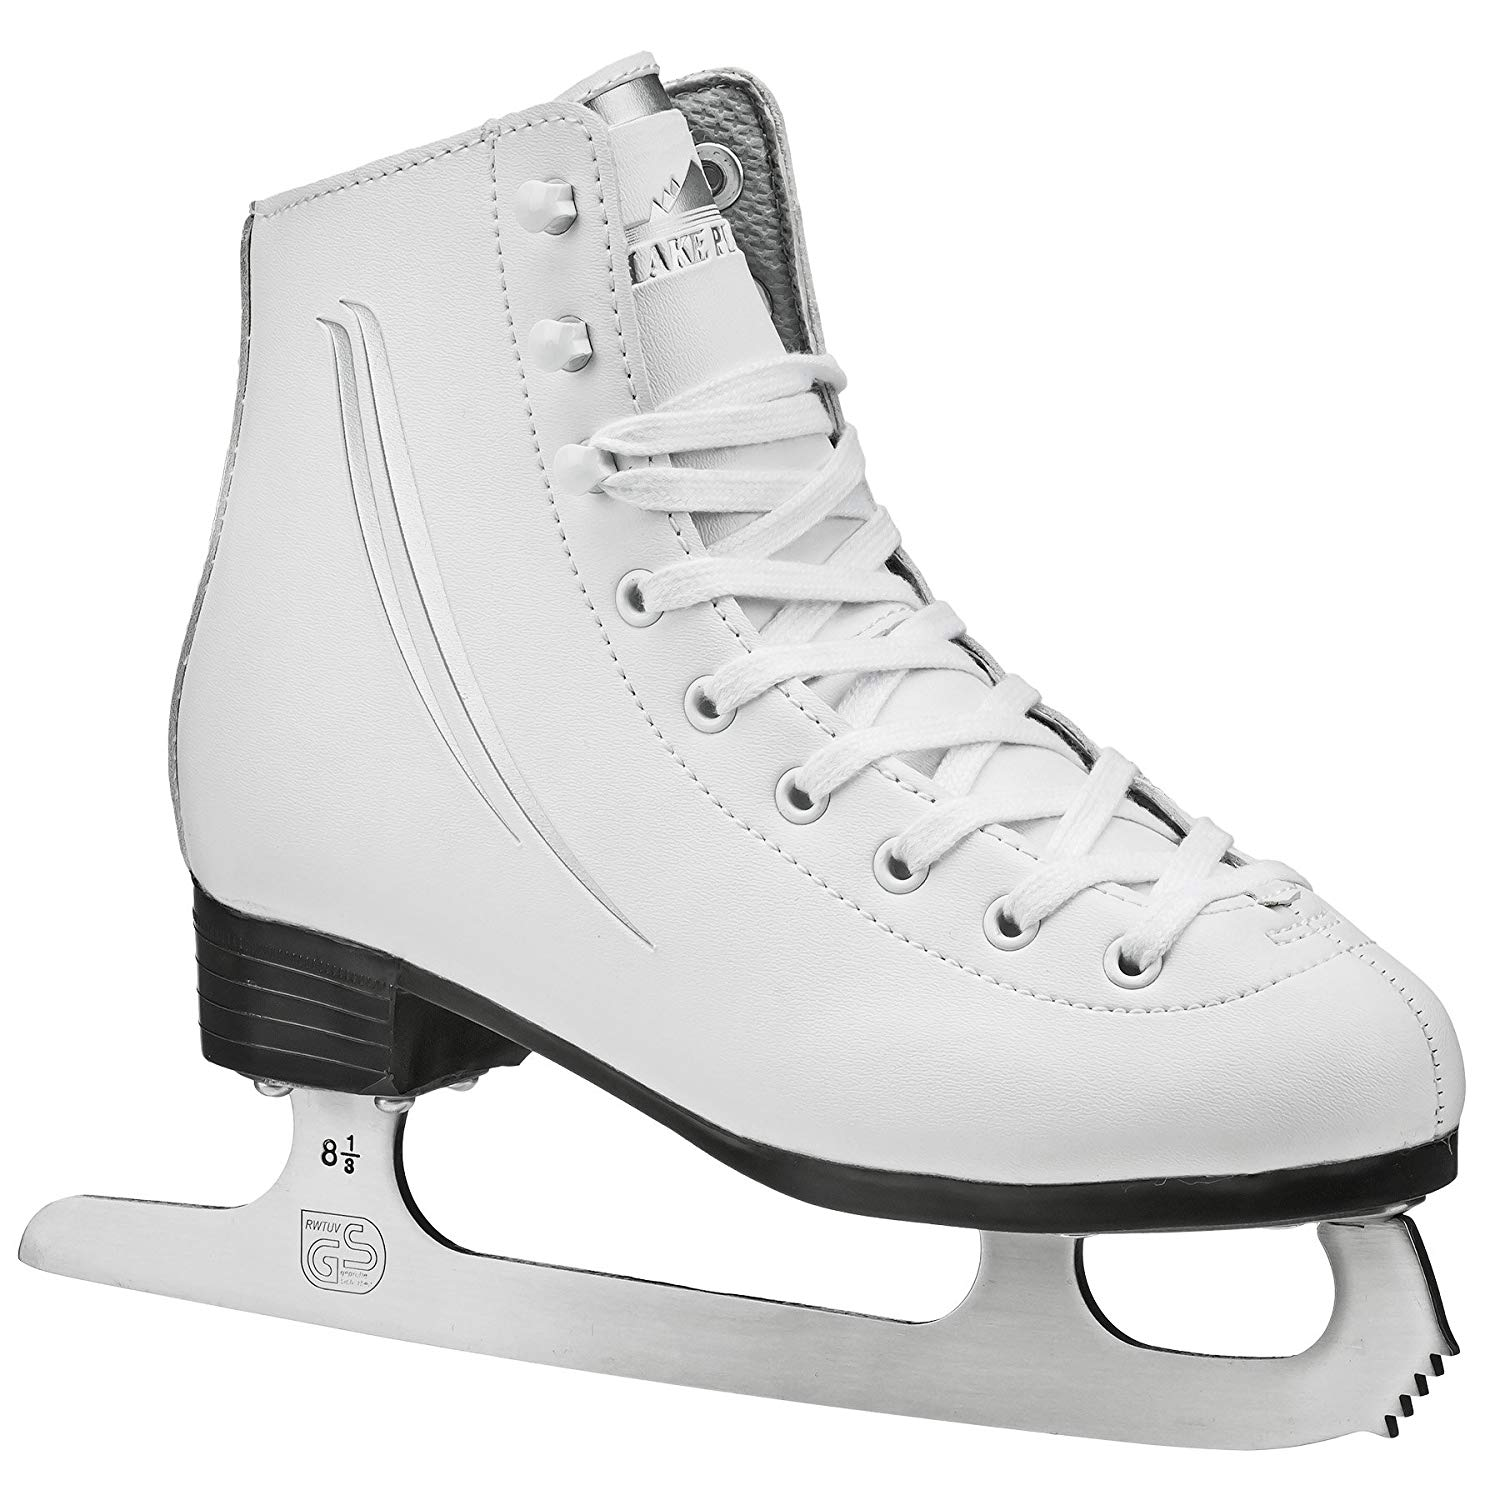 Best ice Skates For Beginner Child 2020